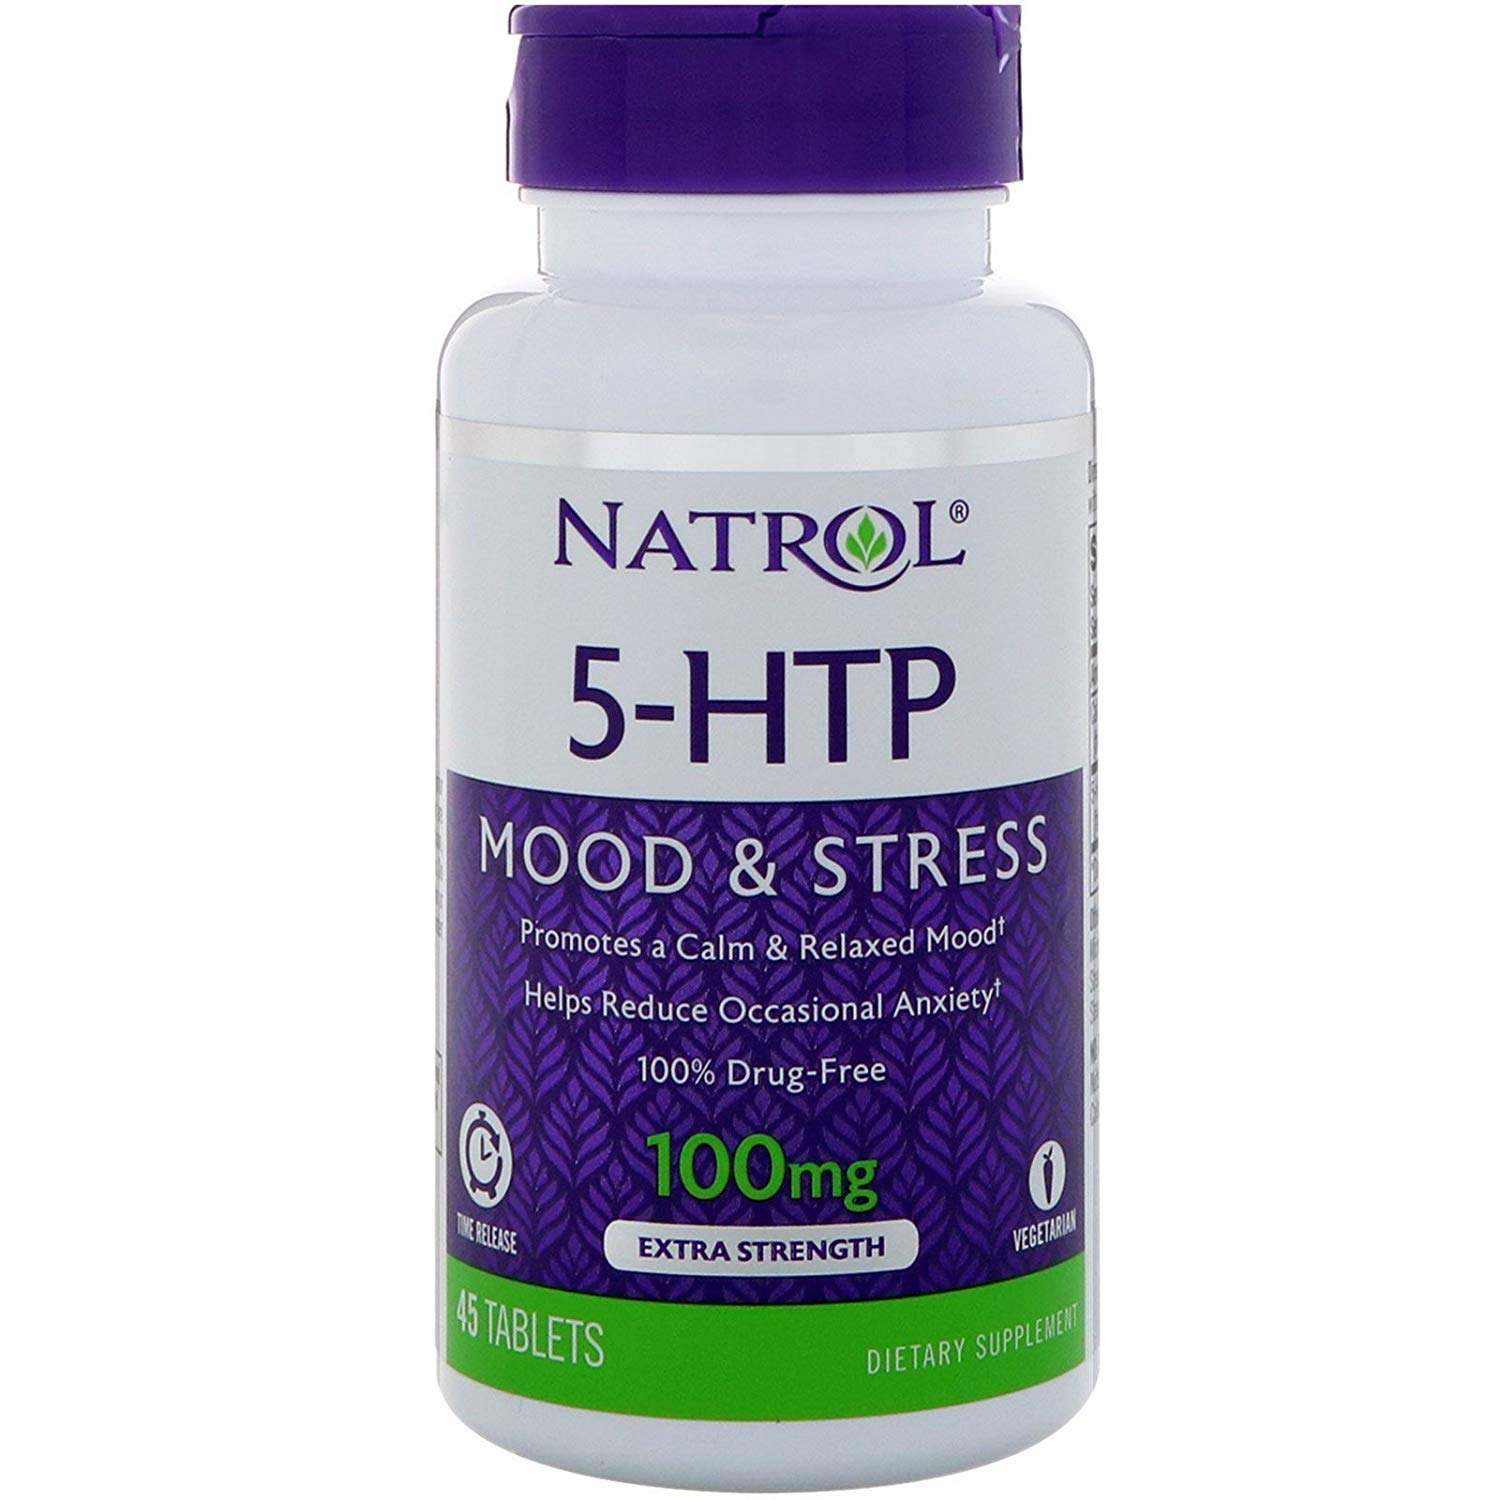 Natrol 5-Htp 100mg Time Release top 5 natural sleep supplements - 71rxAMXYYBL - Top 5 Natural sleep supplements – reviews and buying guide